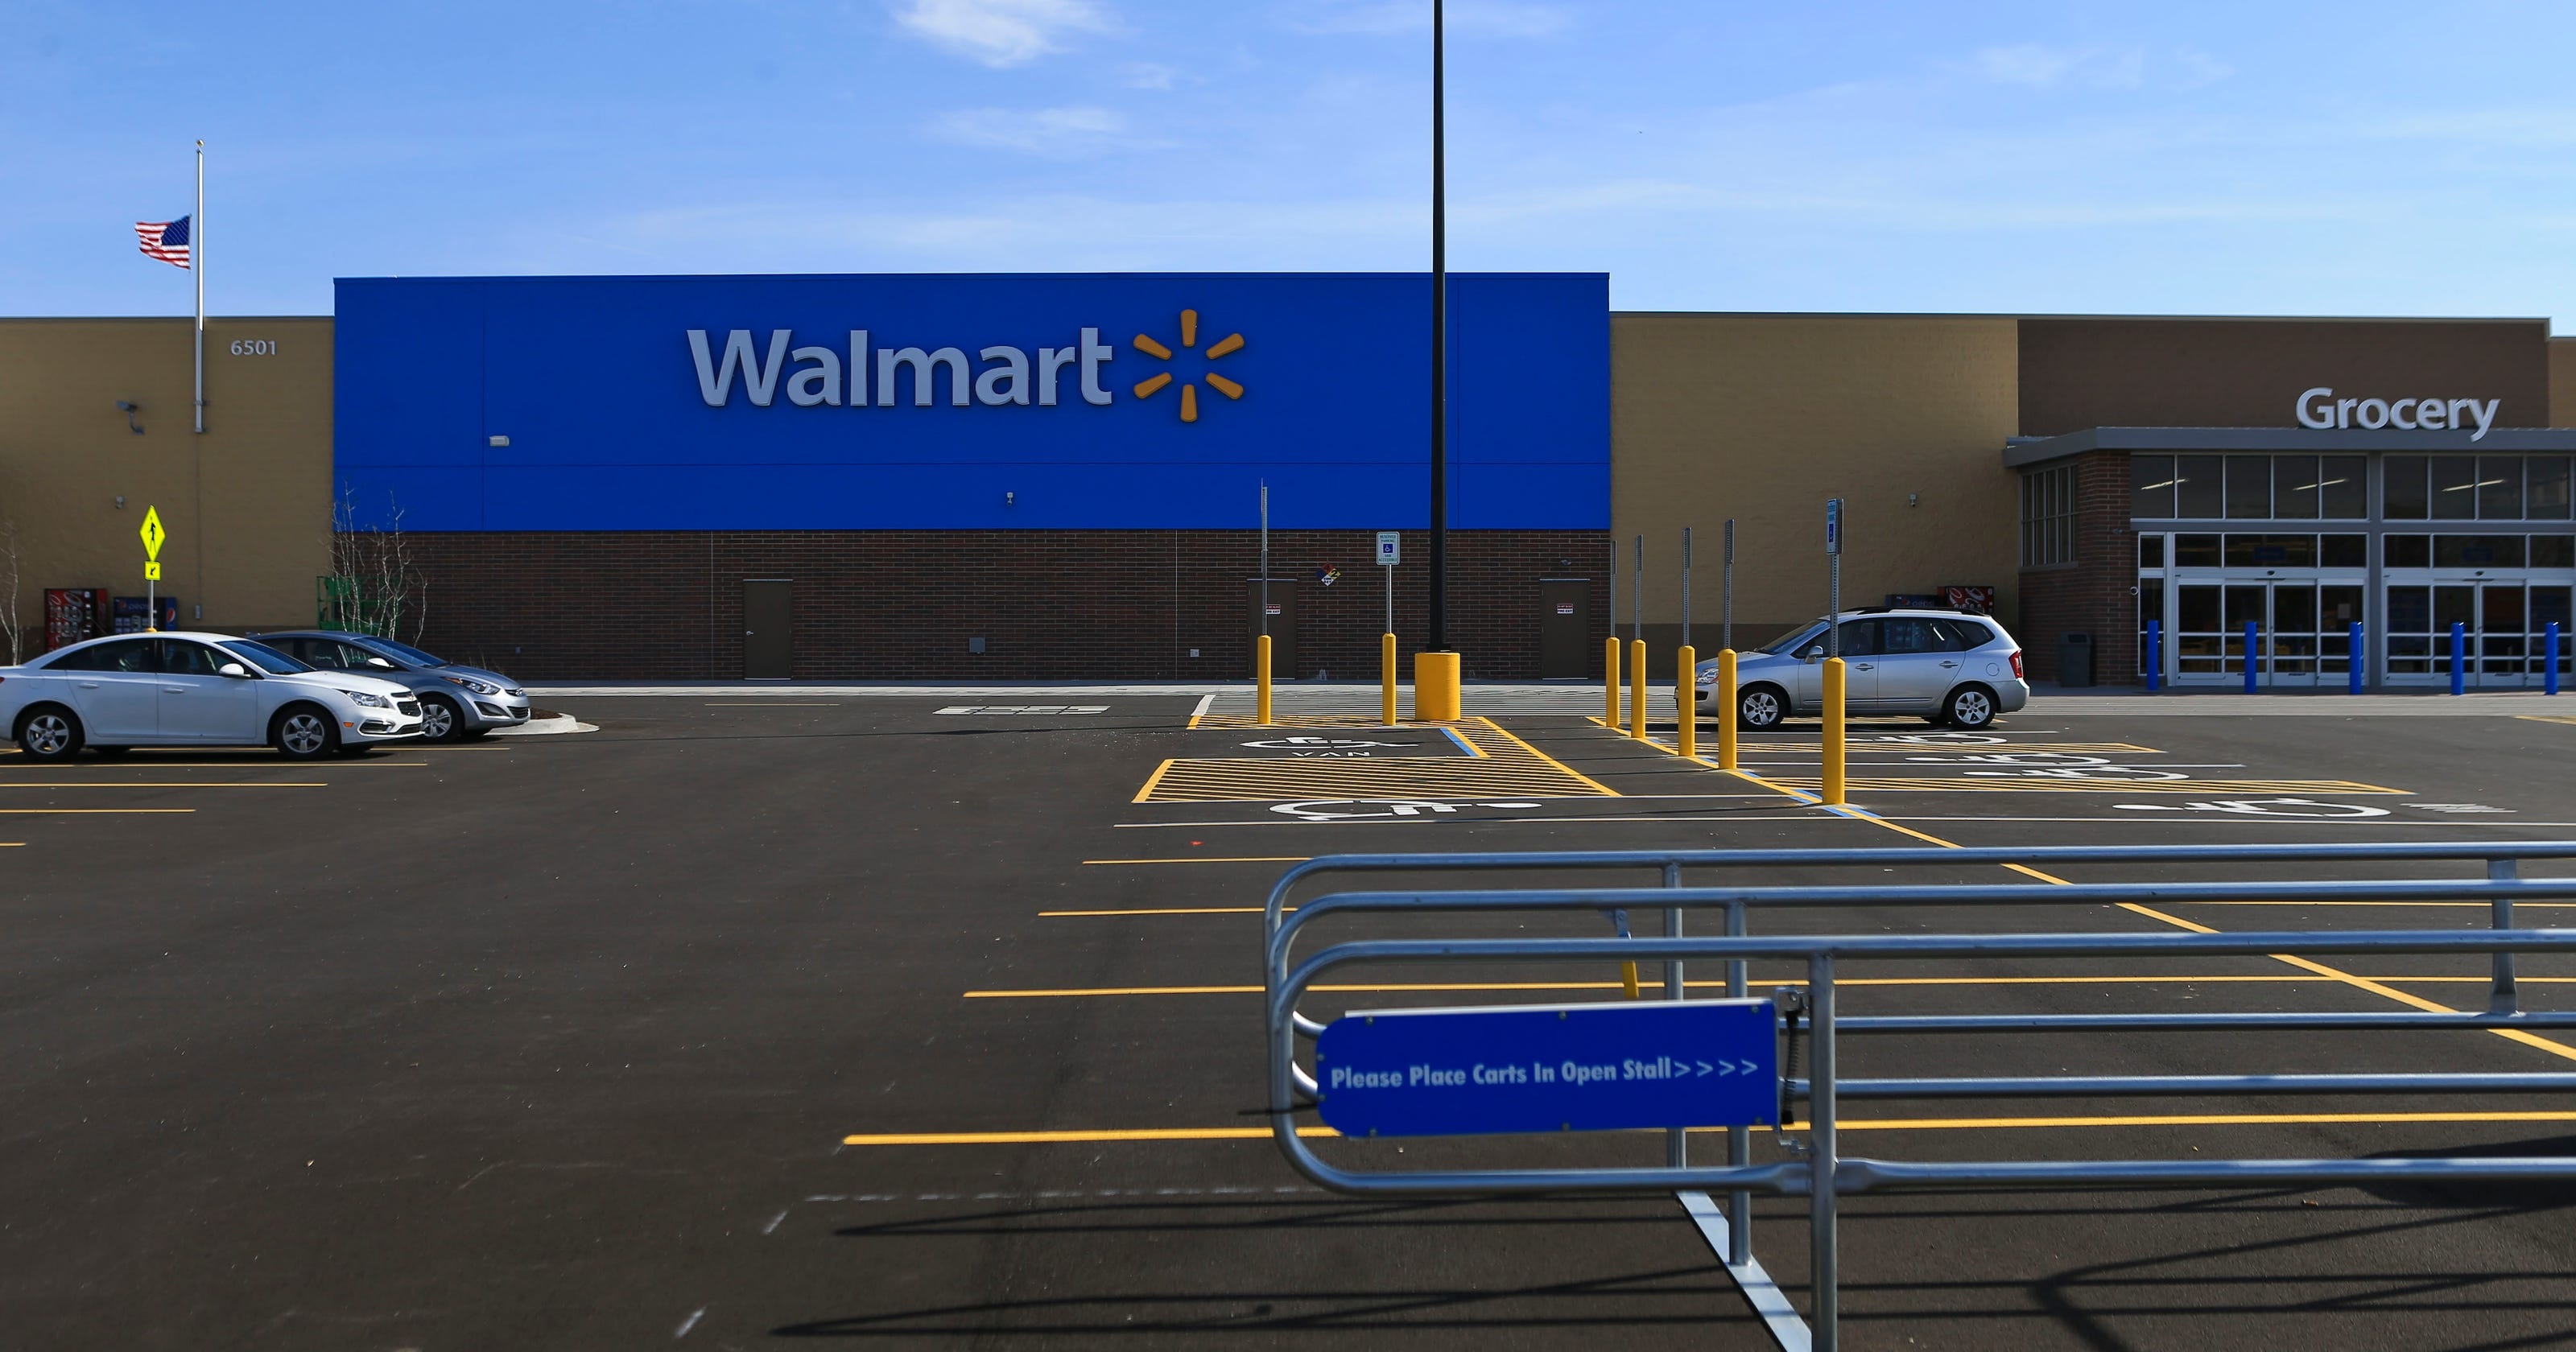 New 24/7 Wal-Mart to open in Crestwood